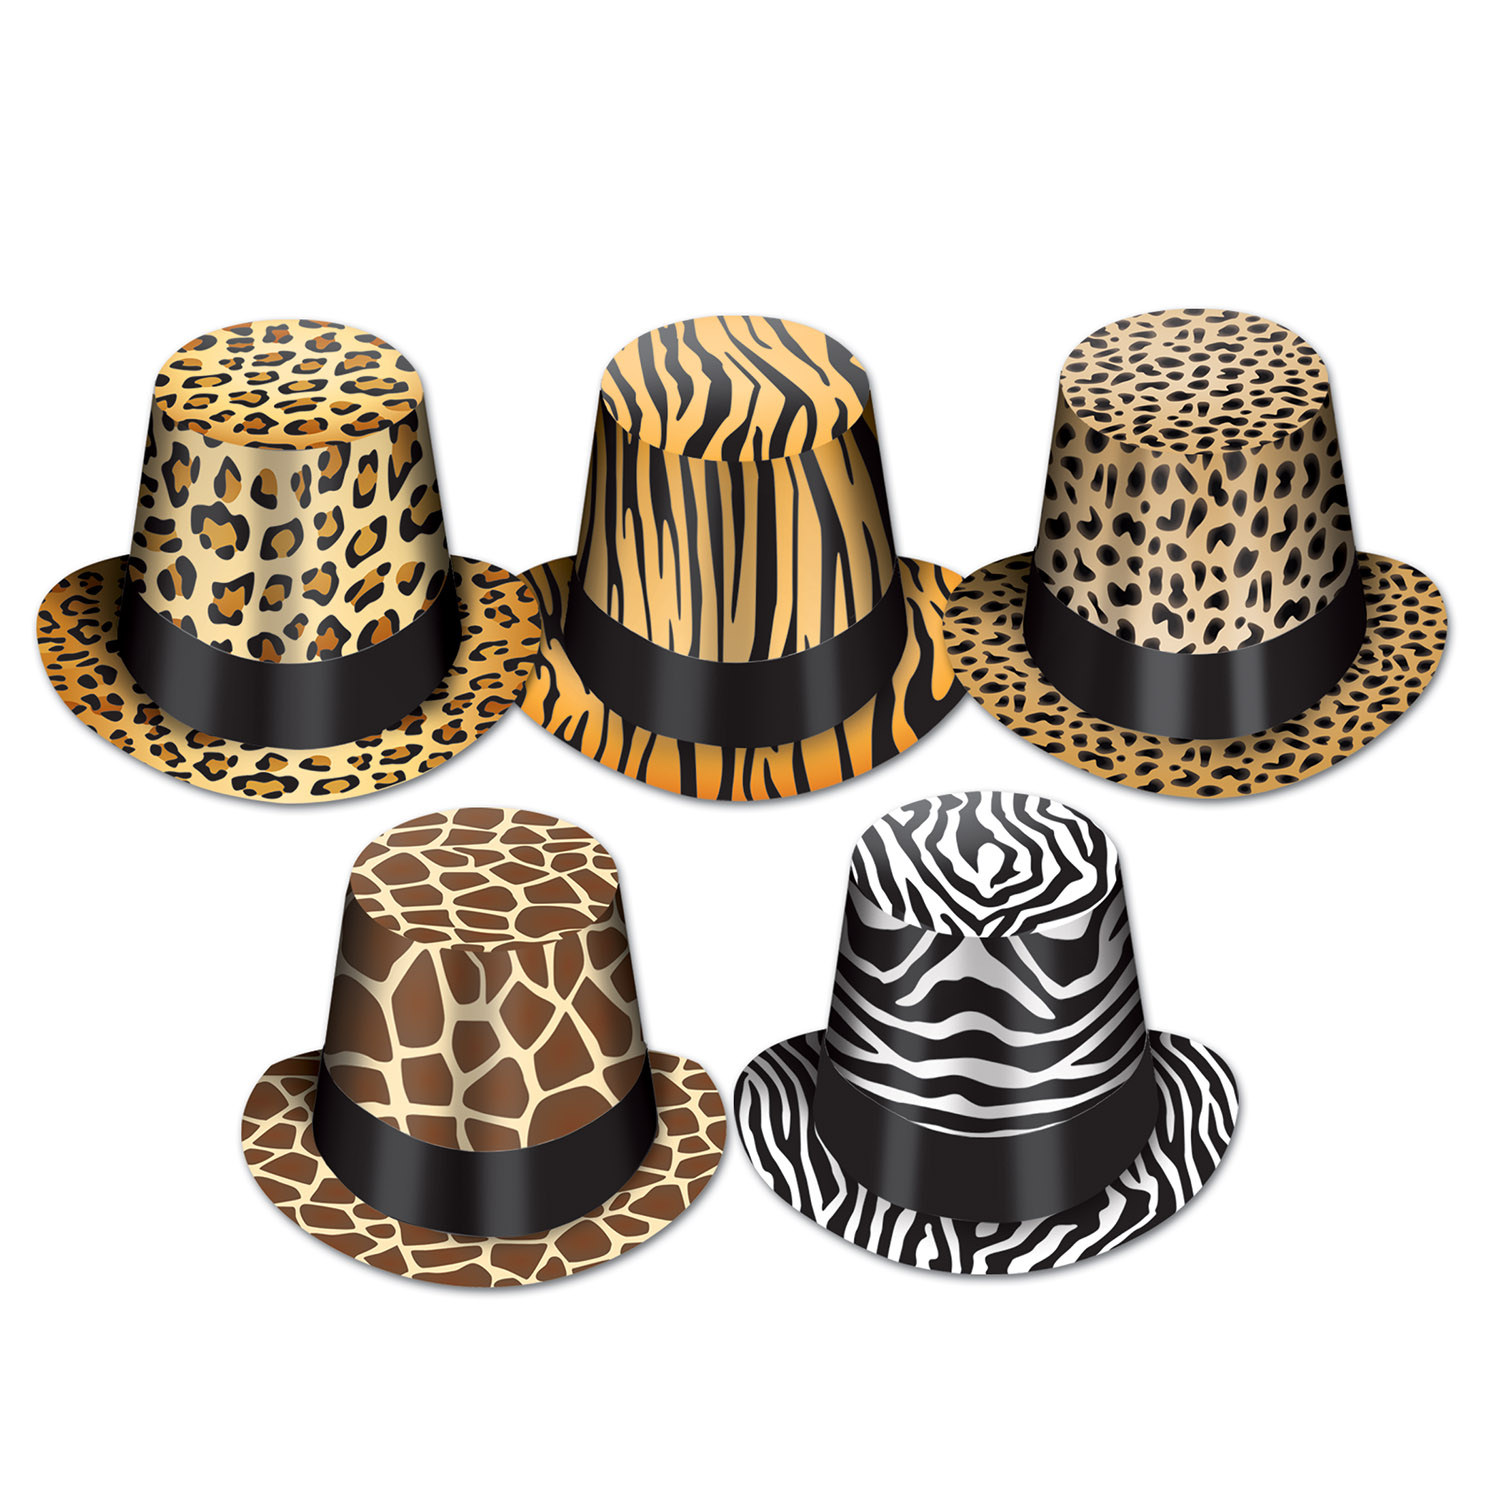 Animal Print Hi-Hats (Pack of 25) Animal Print Hi-Hats, Hi-Hats, Party Hats, Hats, New Year's Hats, New Year's Party Hats, New Year's Eve Hats, New Year's Eve Party Hats